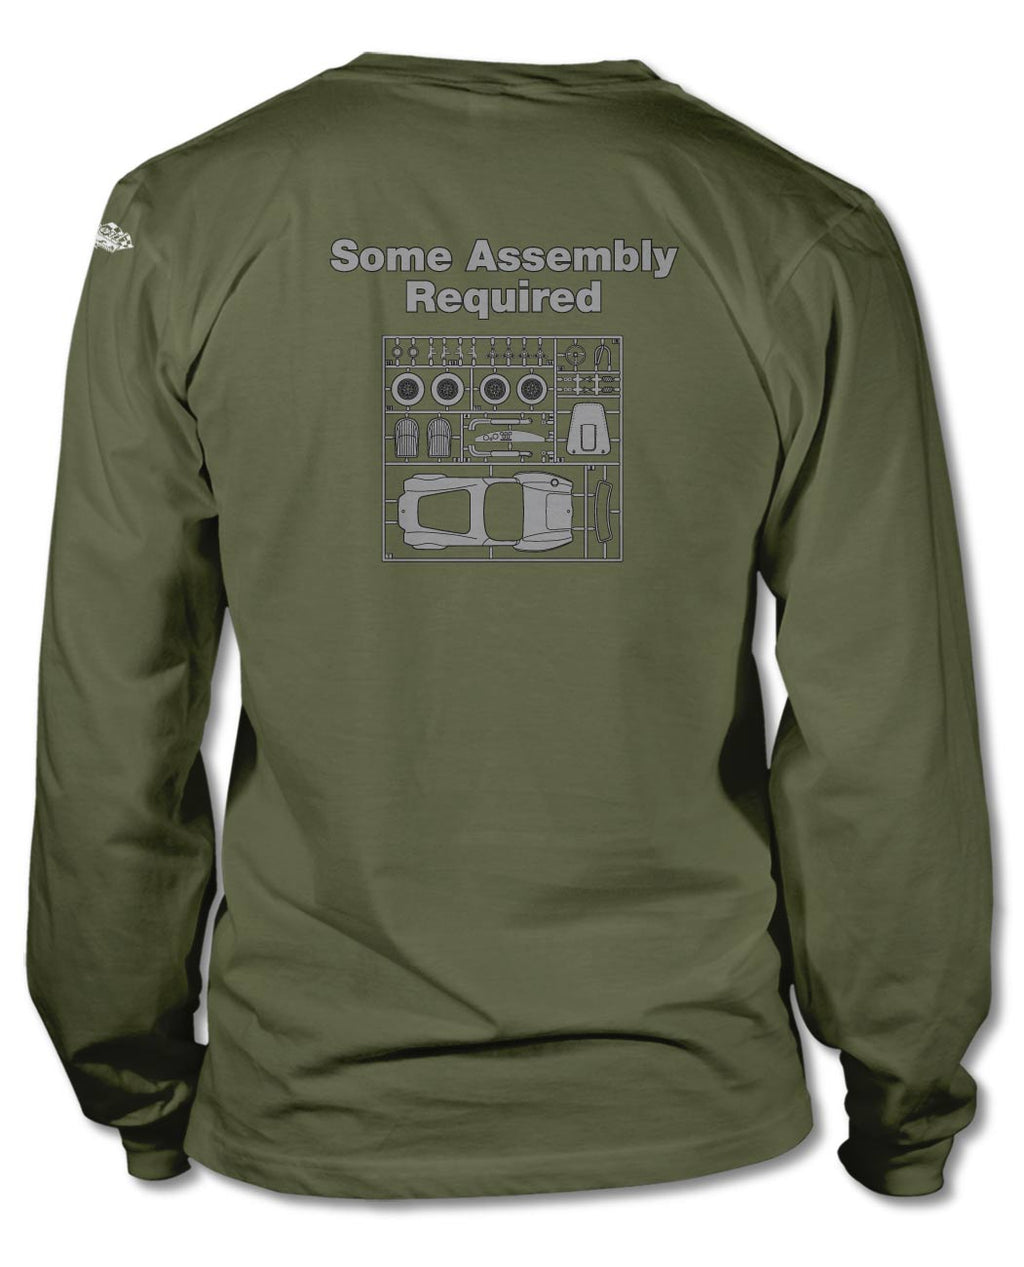 1965 AC Shelby Cobra 427 SC Assembly Required T-Shirt - Long Sleeves